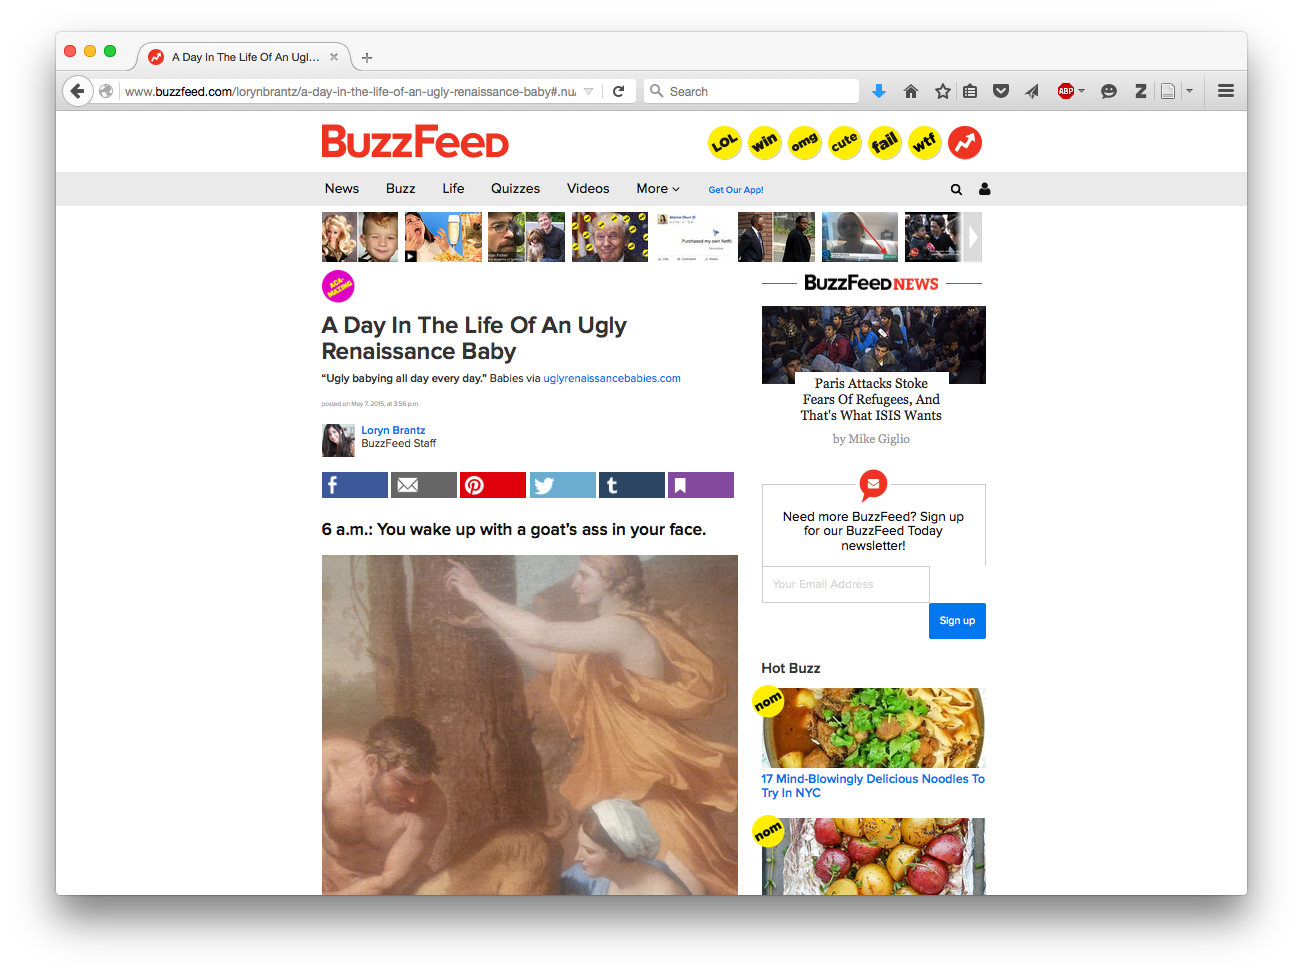 BuzzFeed, A Day In The Life Of An Ugly Renaissance Baby